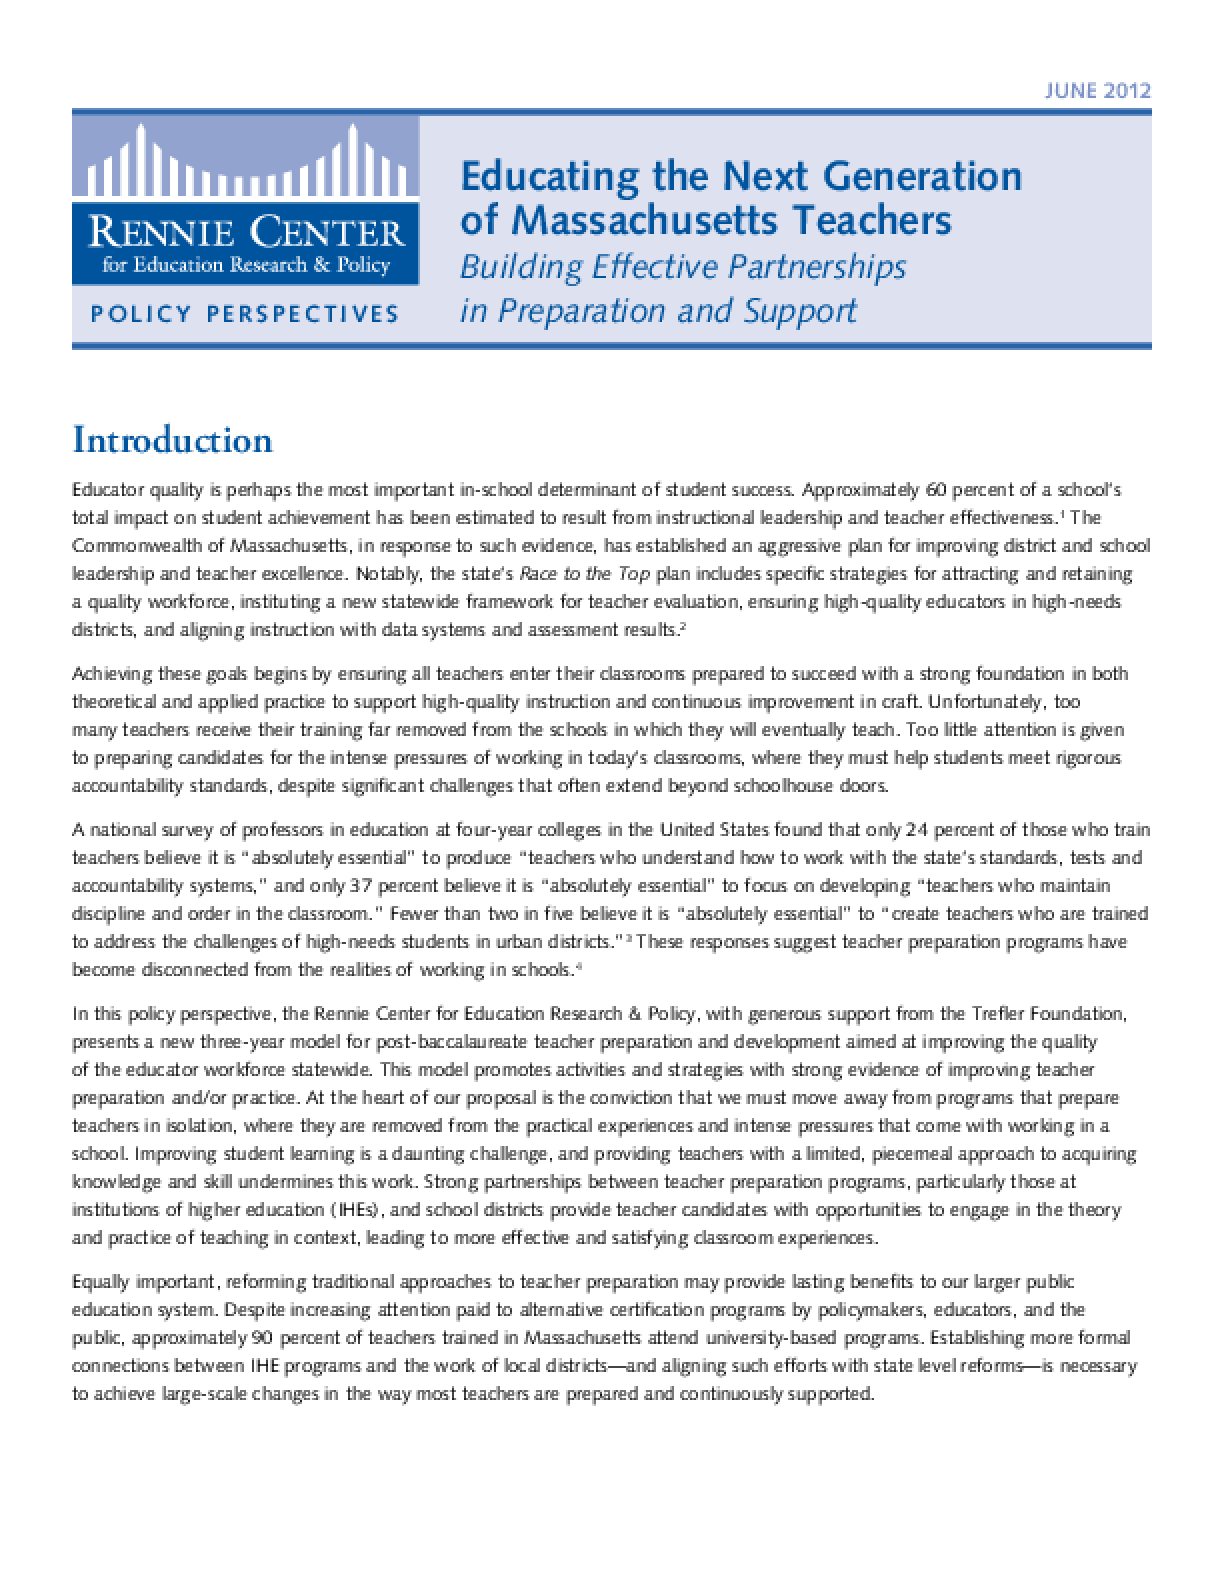 Educating the Next Generation of Massachusetts Teachers: Building Effective Partnerships in Preparation and Support